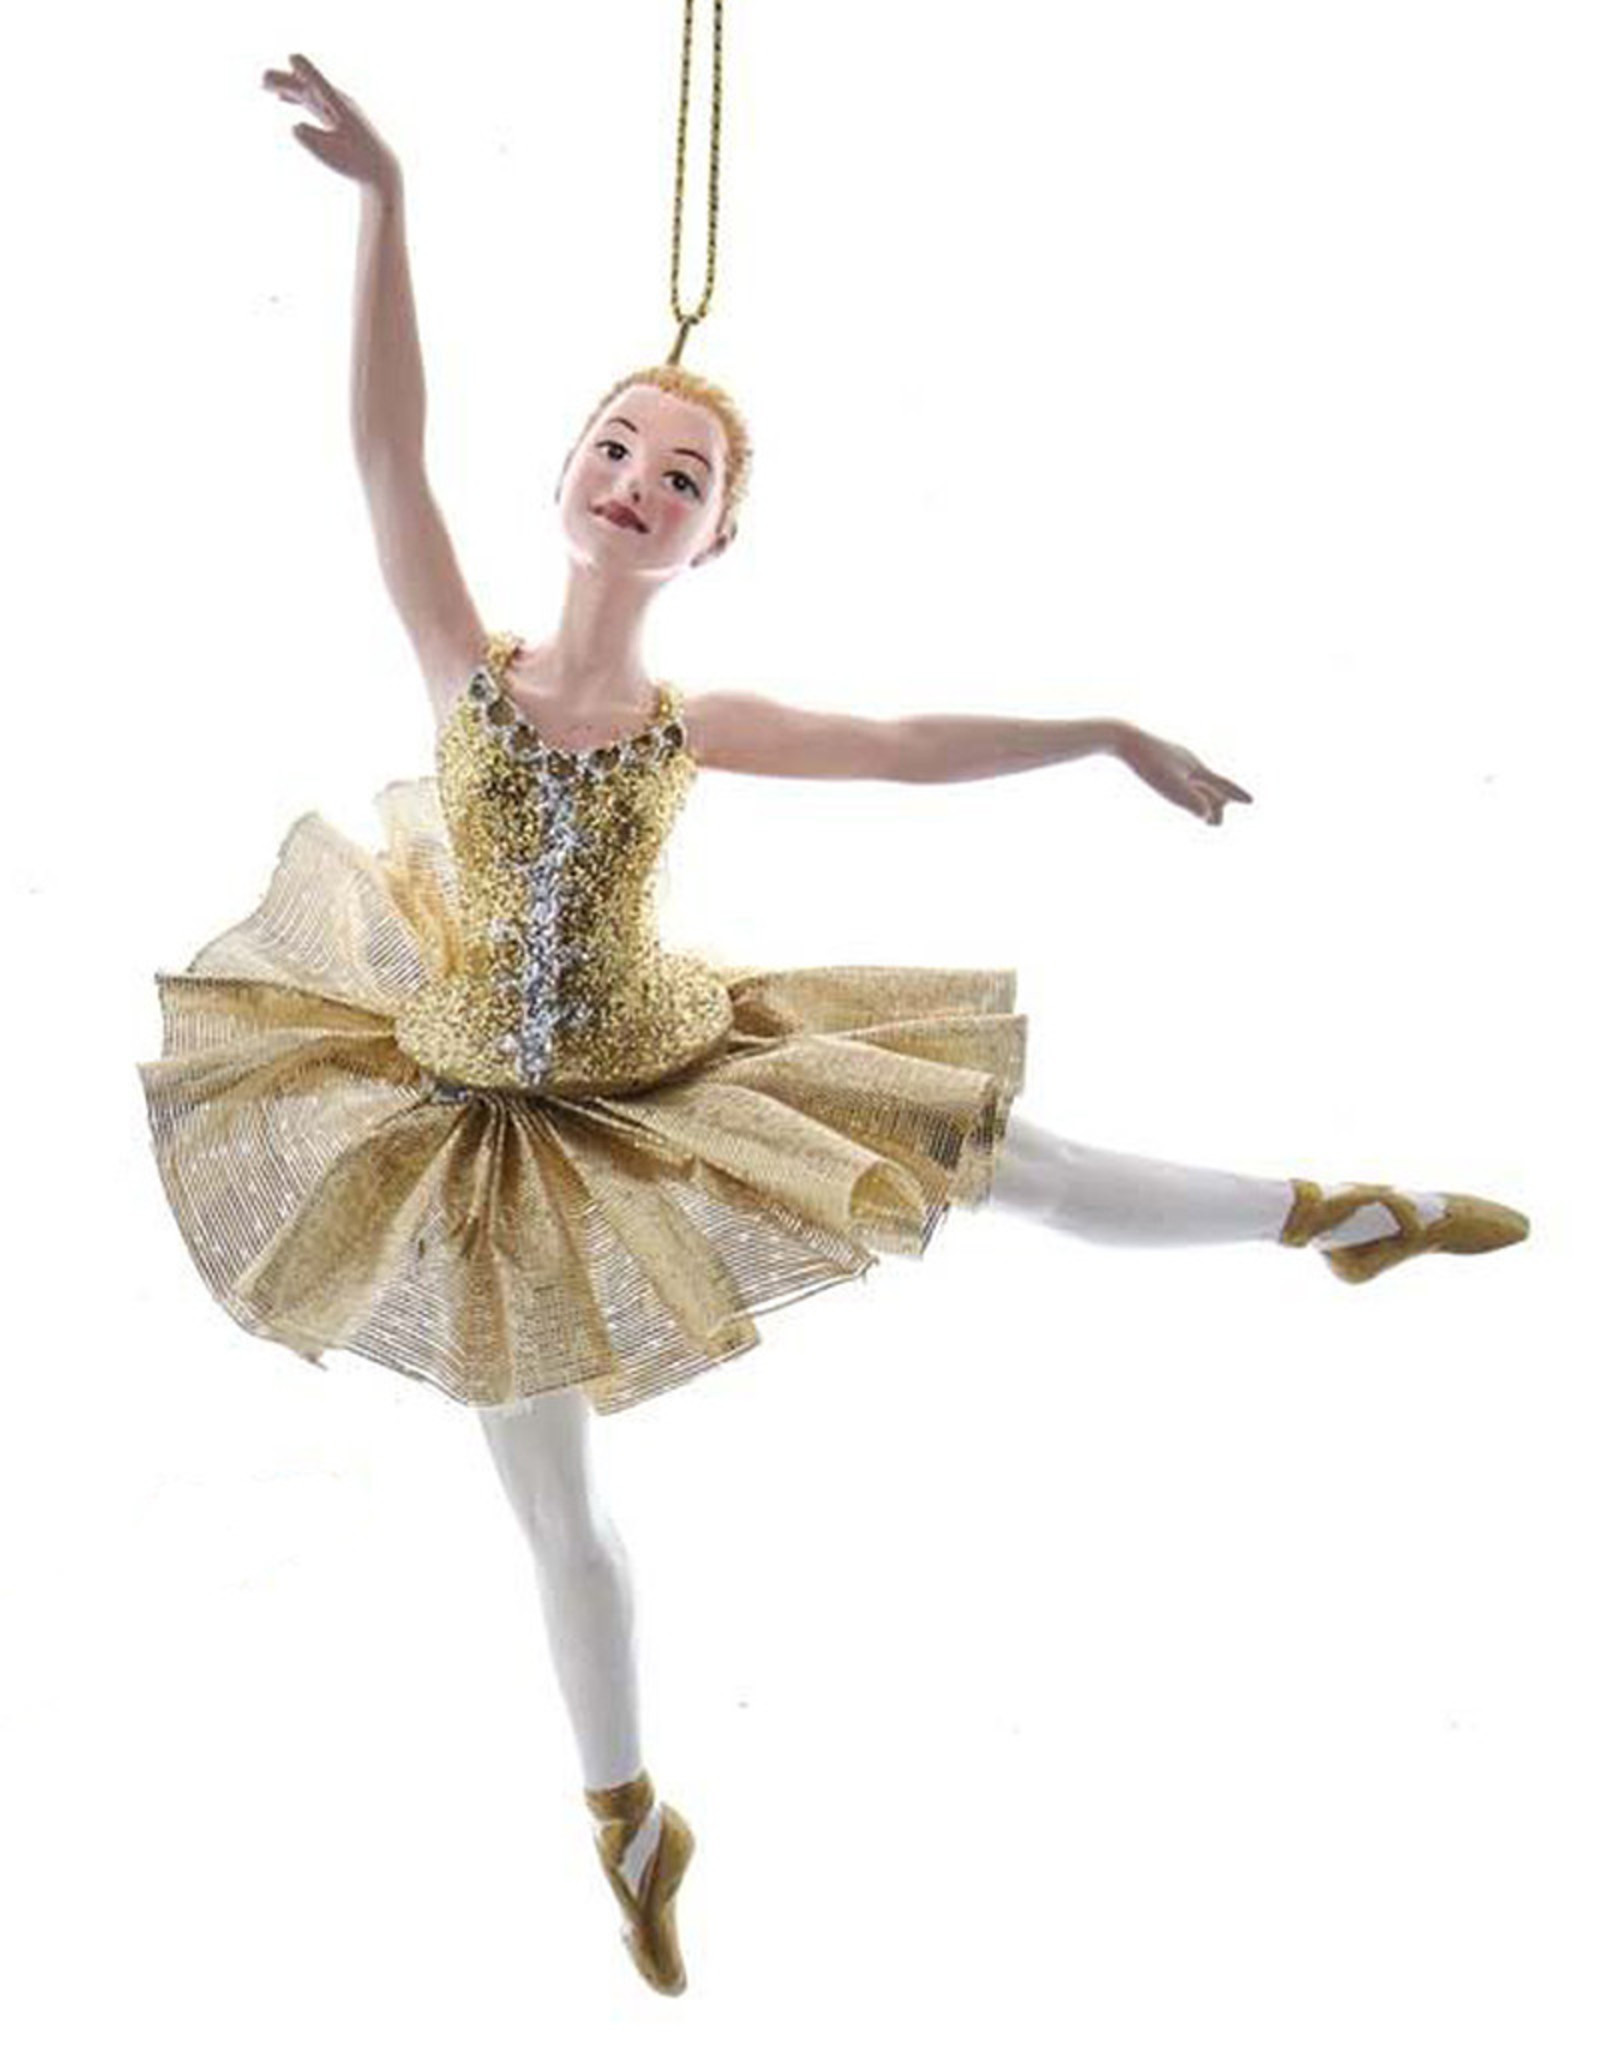 Kurt Adler Ballerina Christmas Ornament Metallic Gold Arabesques A